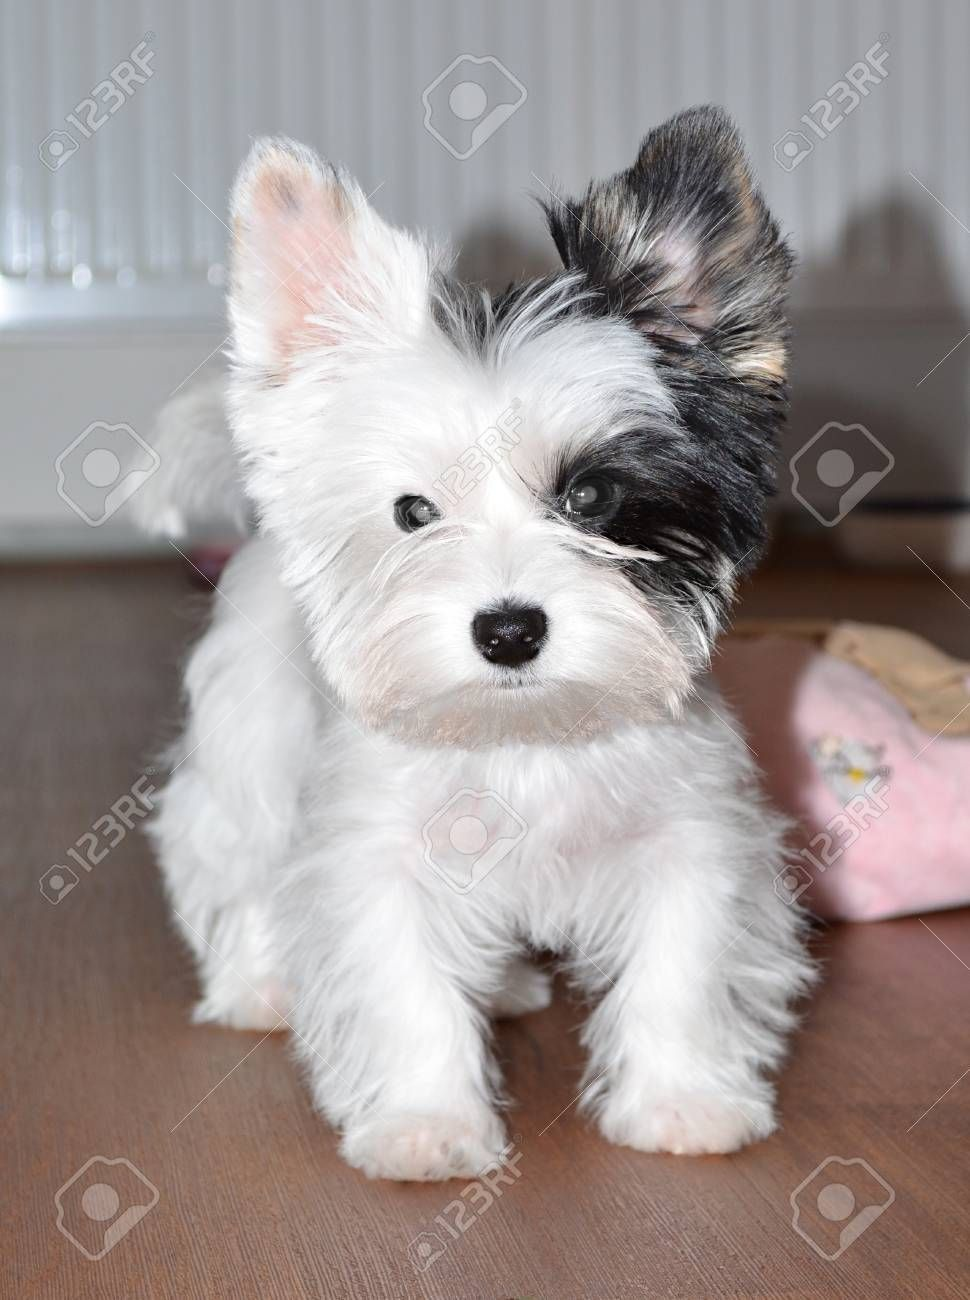 Stock Photo Cute Baby Dogs Yorkshire Terrier Puppies Yorkie Dogs